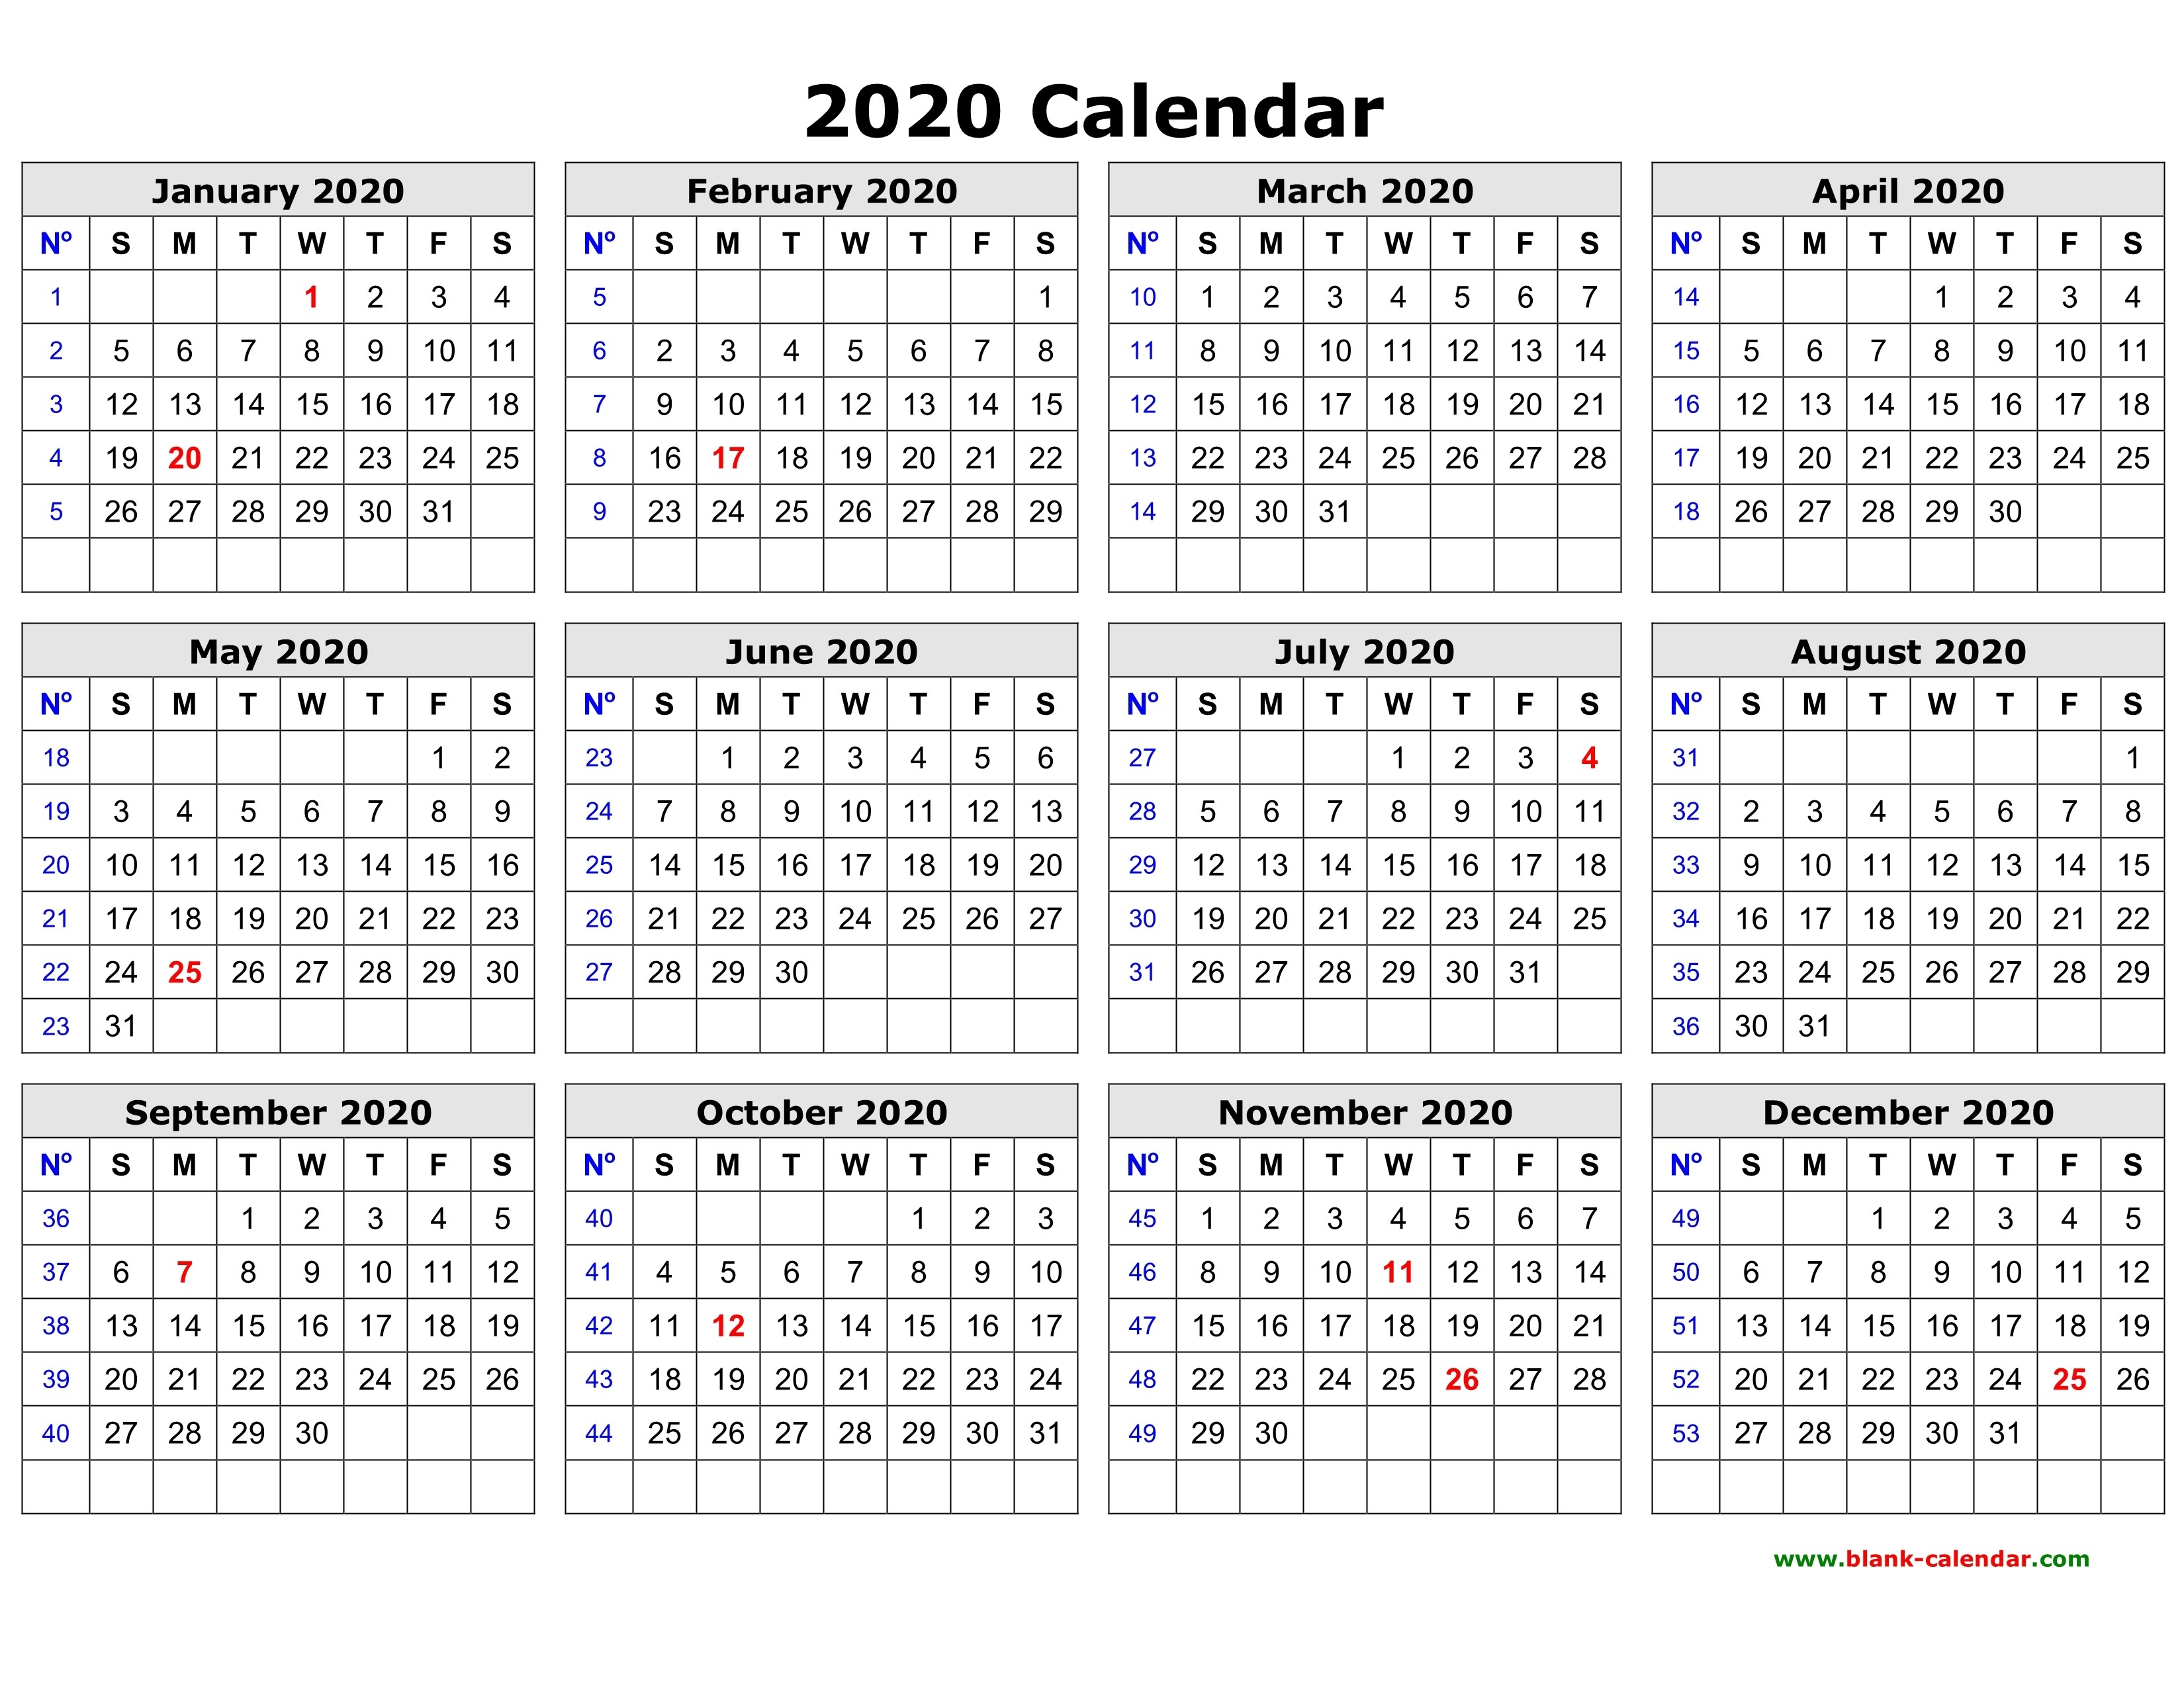 Free Download Printable Calendar 2020 In One Page, Clean Design.-Free 2 Page Calendar Templates 2020